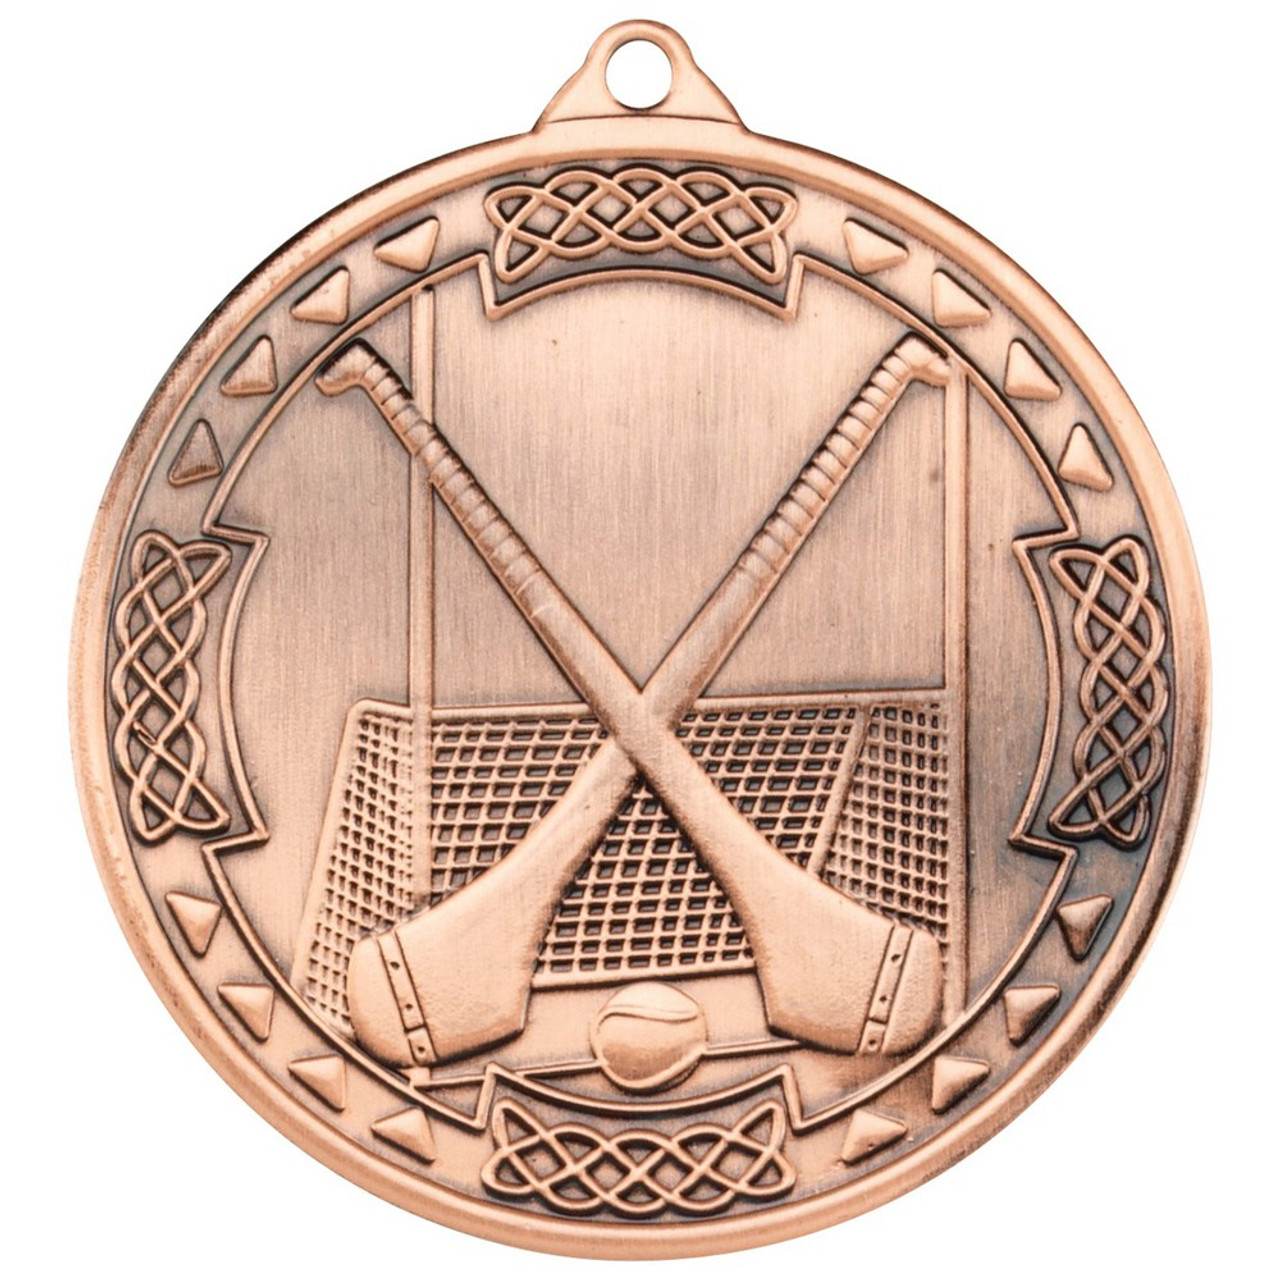 50mm Bronze Hurling Medal Award